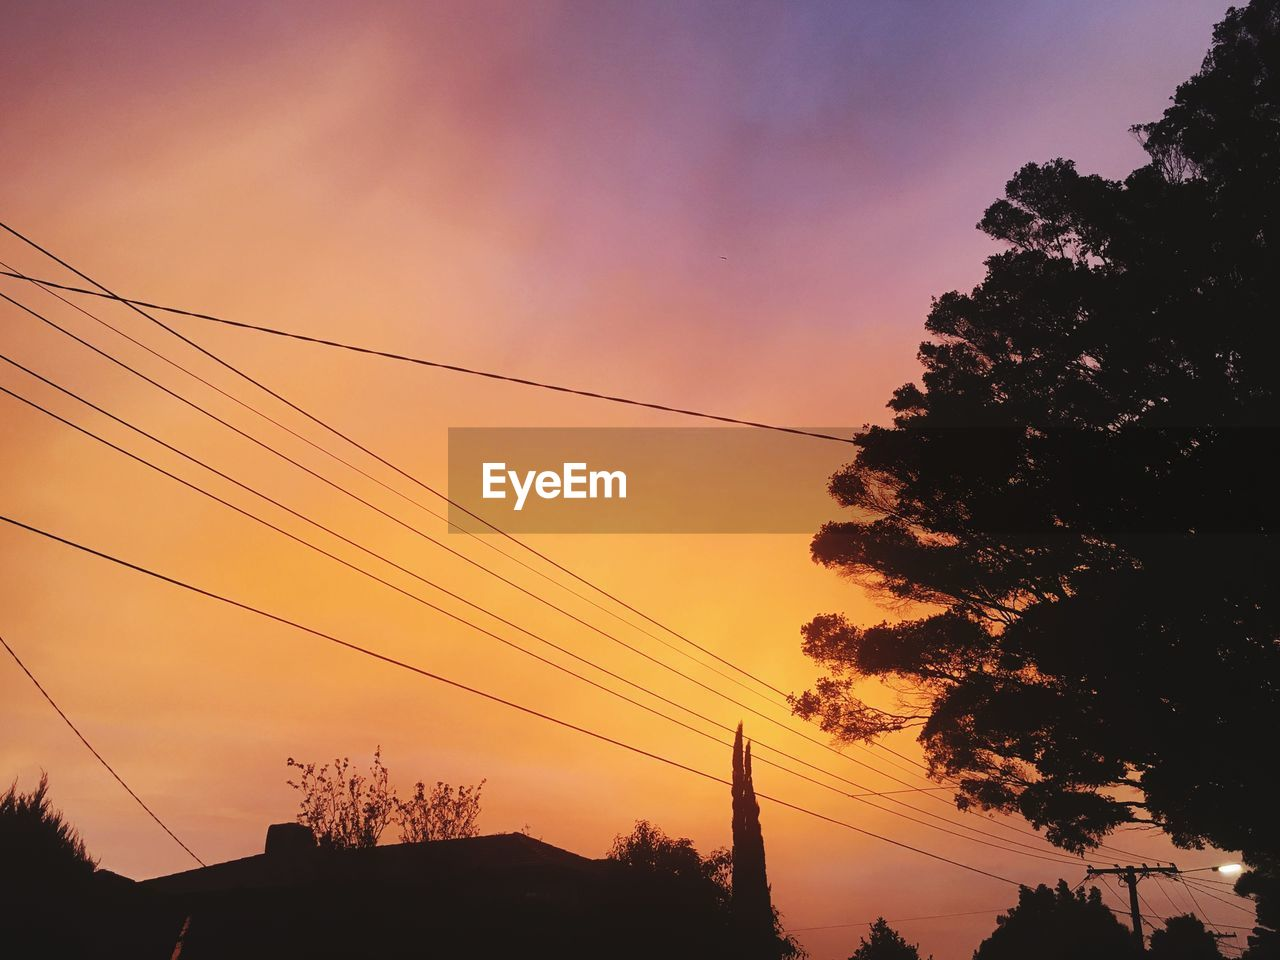 sky, silhouette, sunset, tree, cable, plant, electricity, power line, nature, low angle view, beauty in nature, cloud - sky, technology, no people, connection, power supply, orange color, electricity pylon, outdoors, tranquility, telephone line, romantic sky